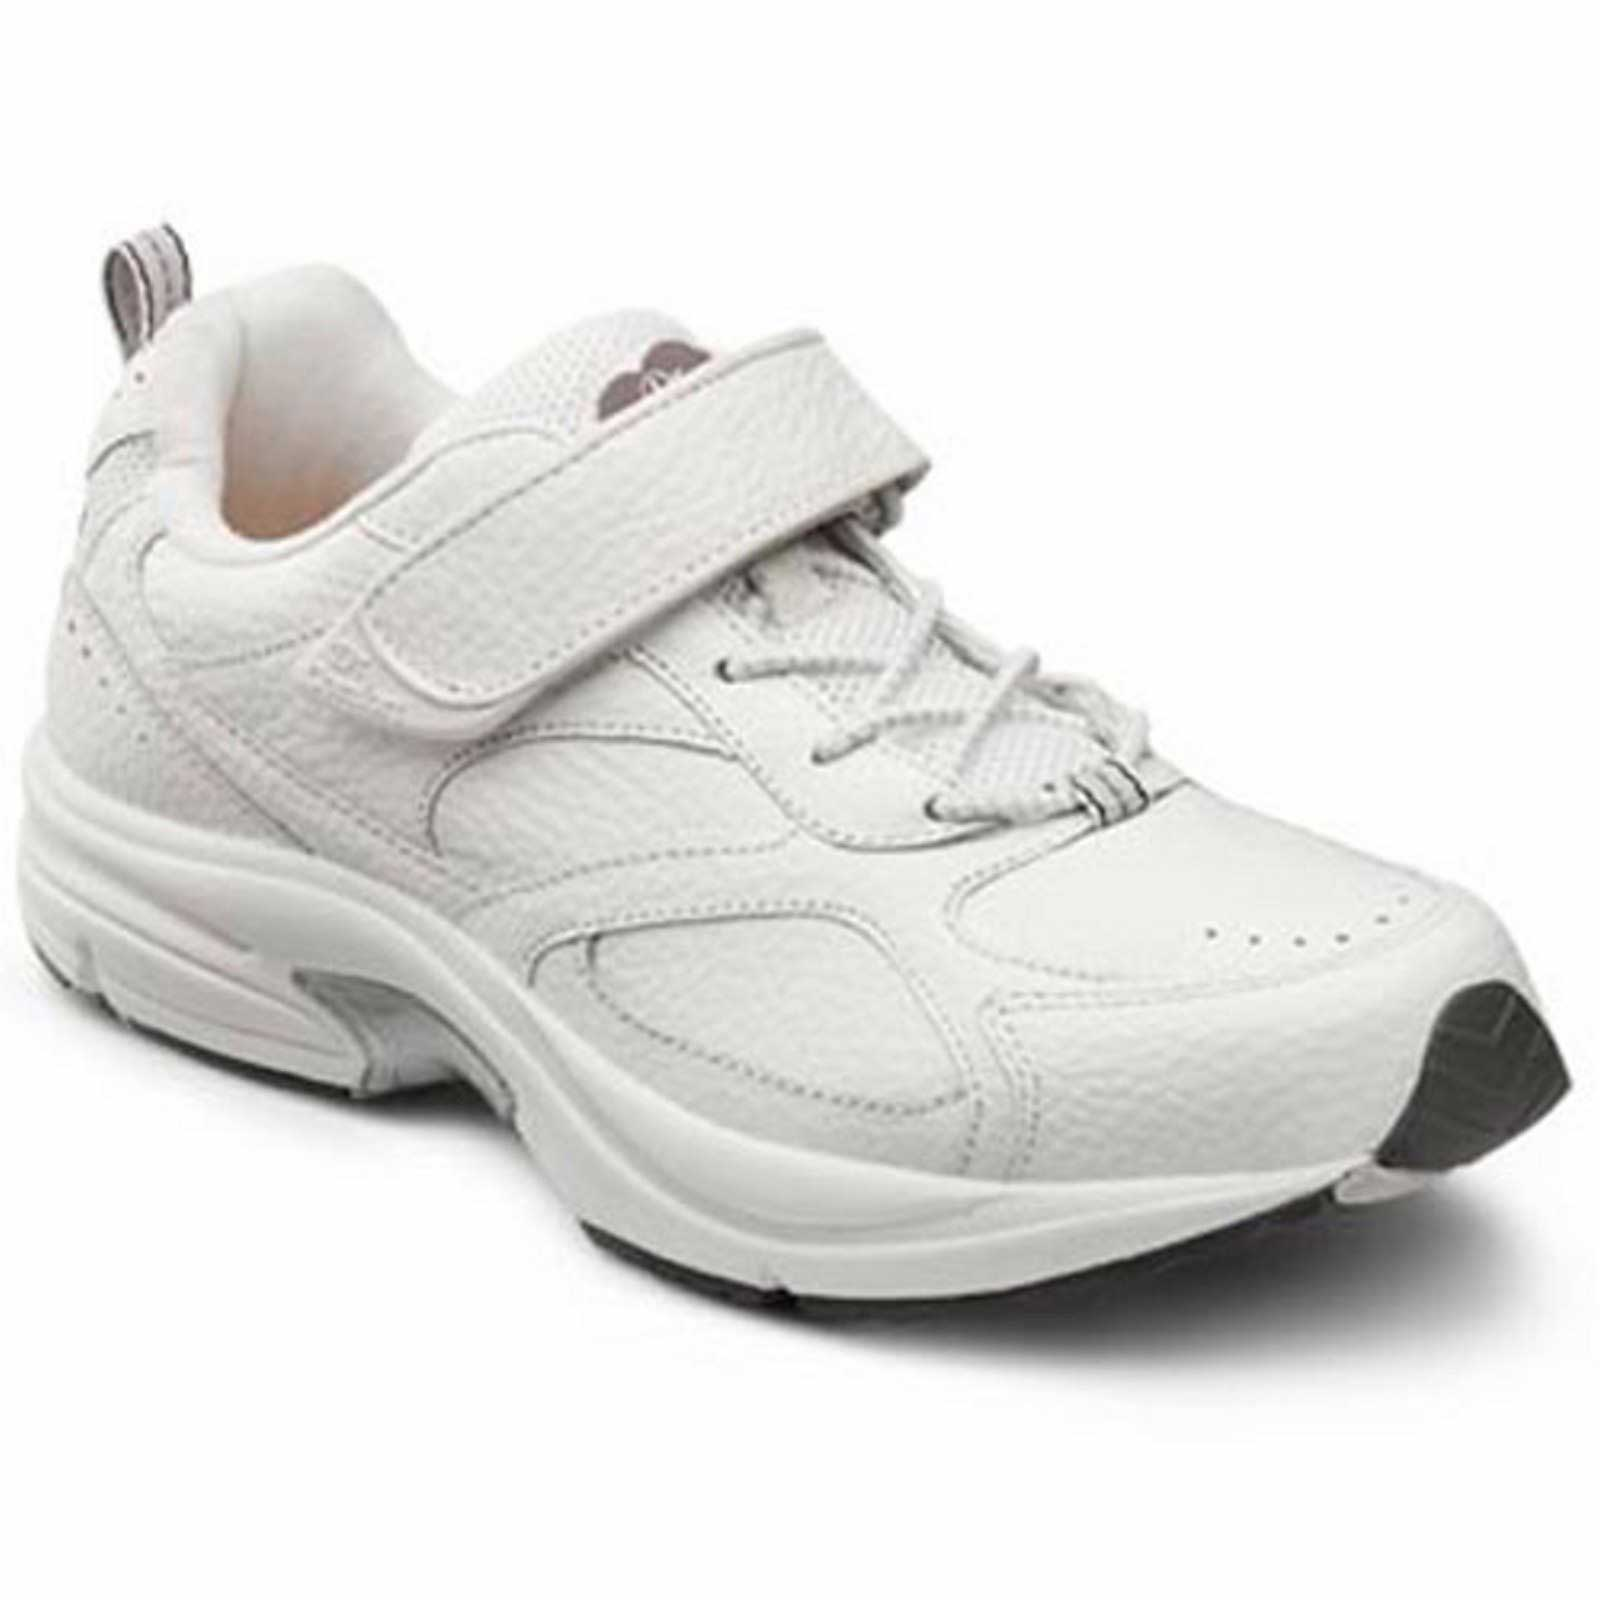 b3922881cba393 Dr. Comfort Shoes Winner (formerly Champion) - Men s Comfort Therapeutic Diabetic  Shoe with Gel Plus Inserts - Athletic - Medium - Extra Wide - Extra Depth  ...